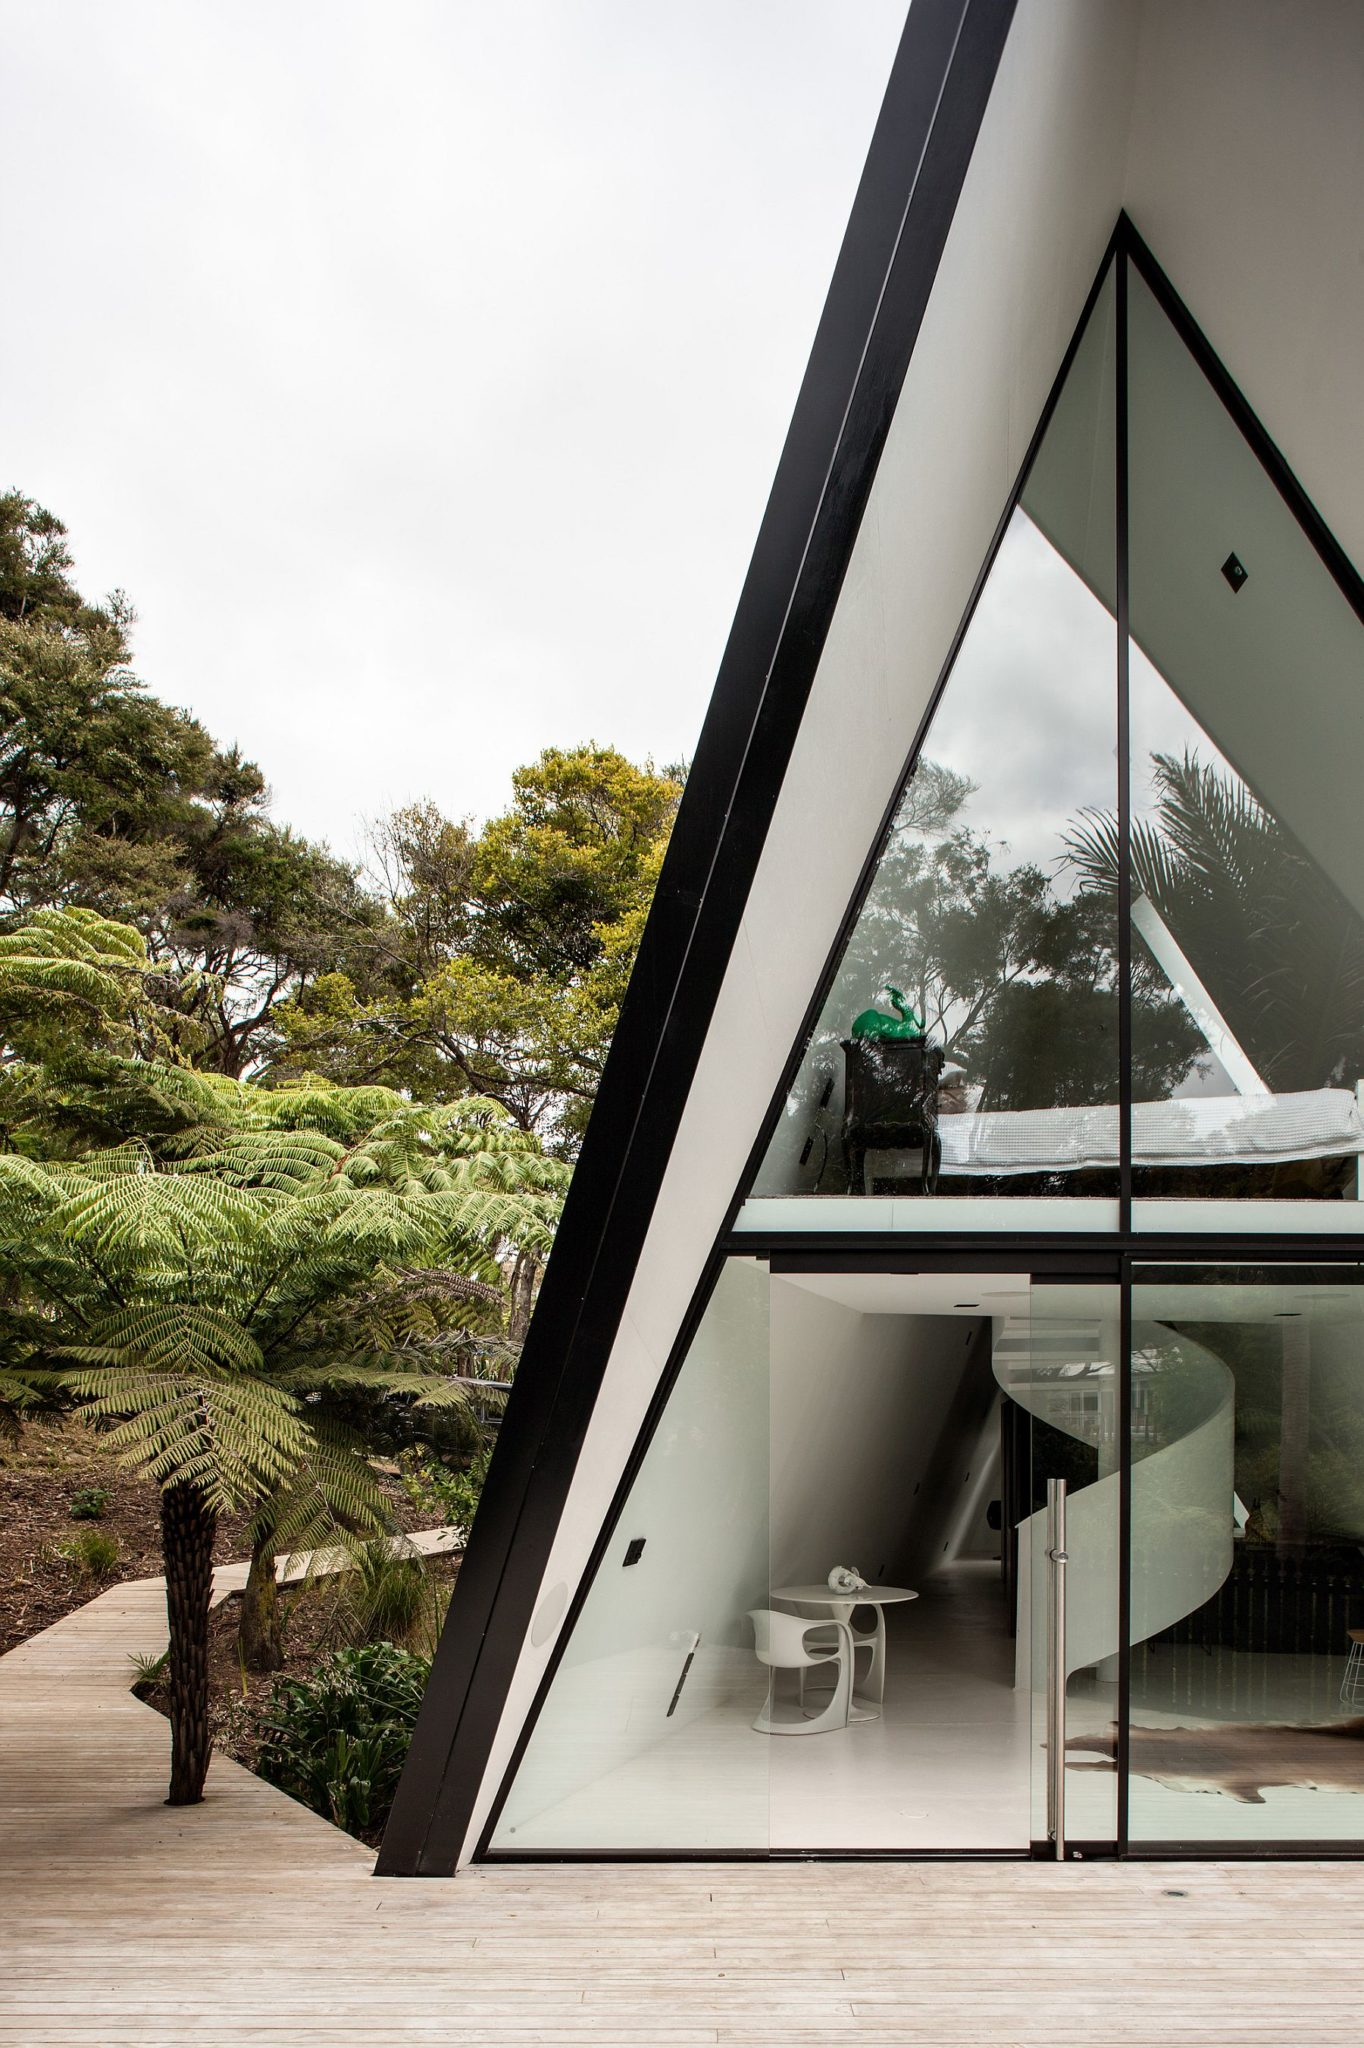 Innovative-Tent-House-designed-by-Chris-Tate-Architecture